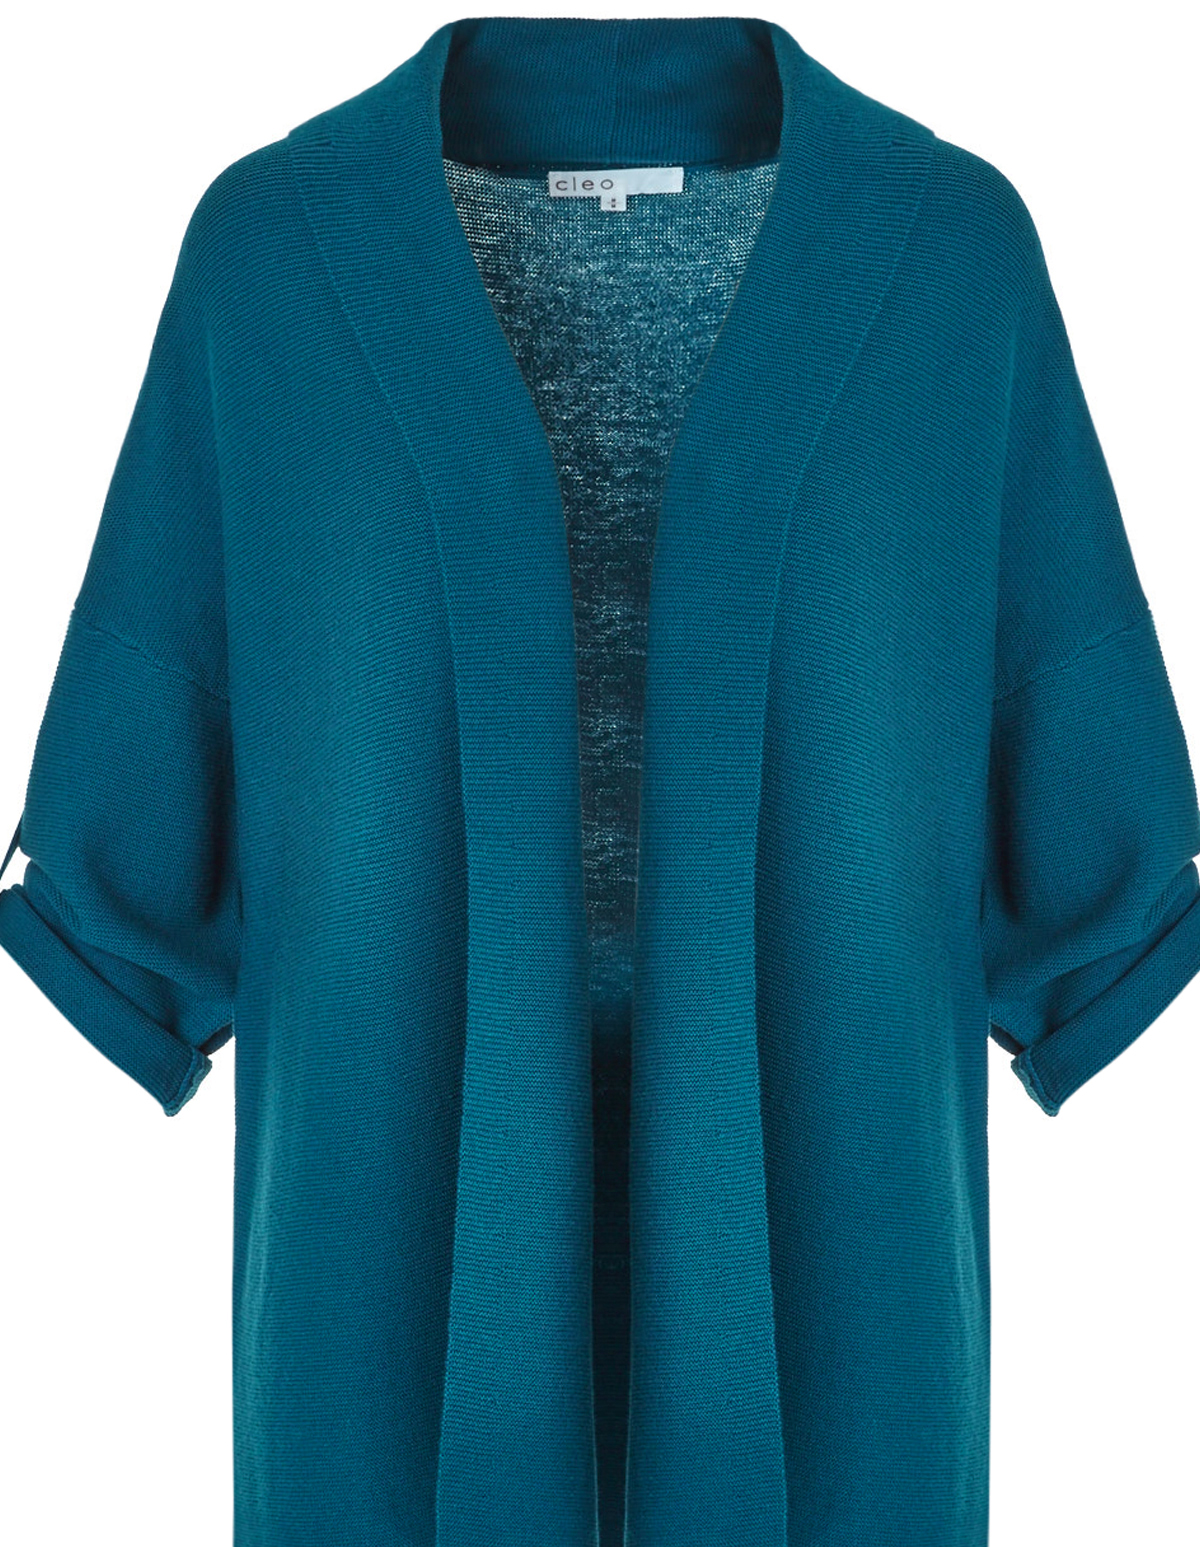 Shop for turquoise sweater womens online at Target. Free shipping on purchases over $35 and save 5% every day with your Target REDcard.